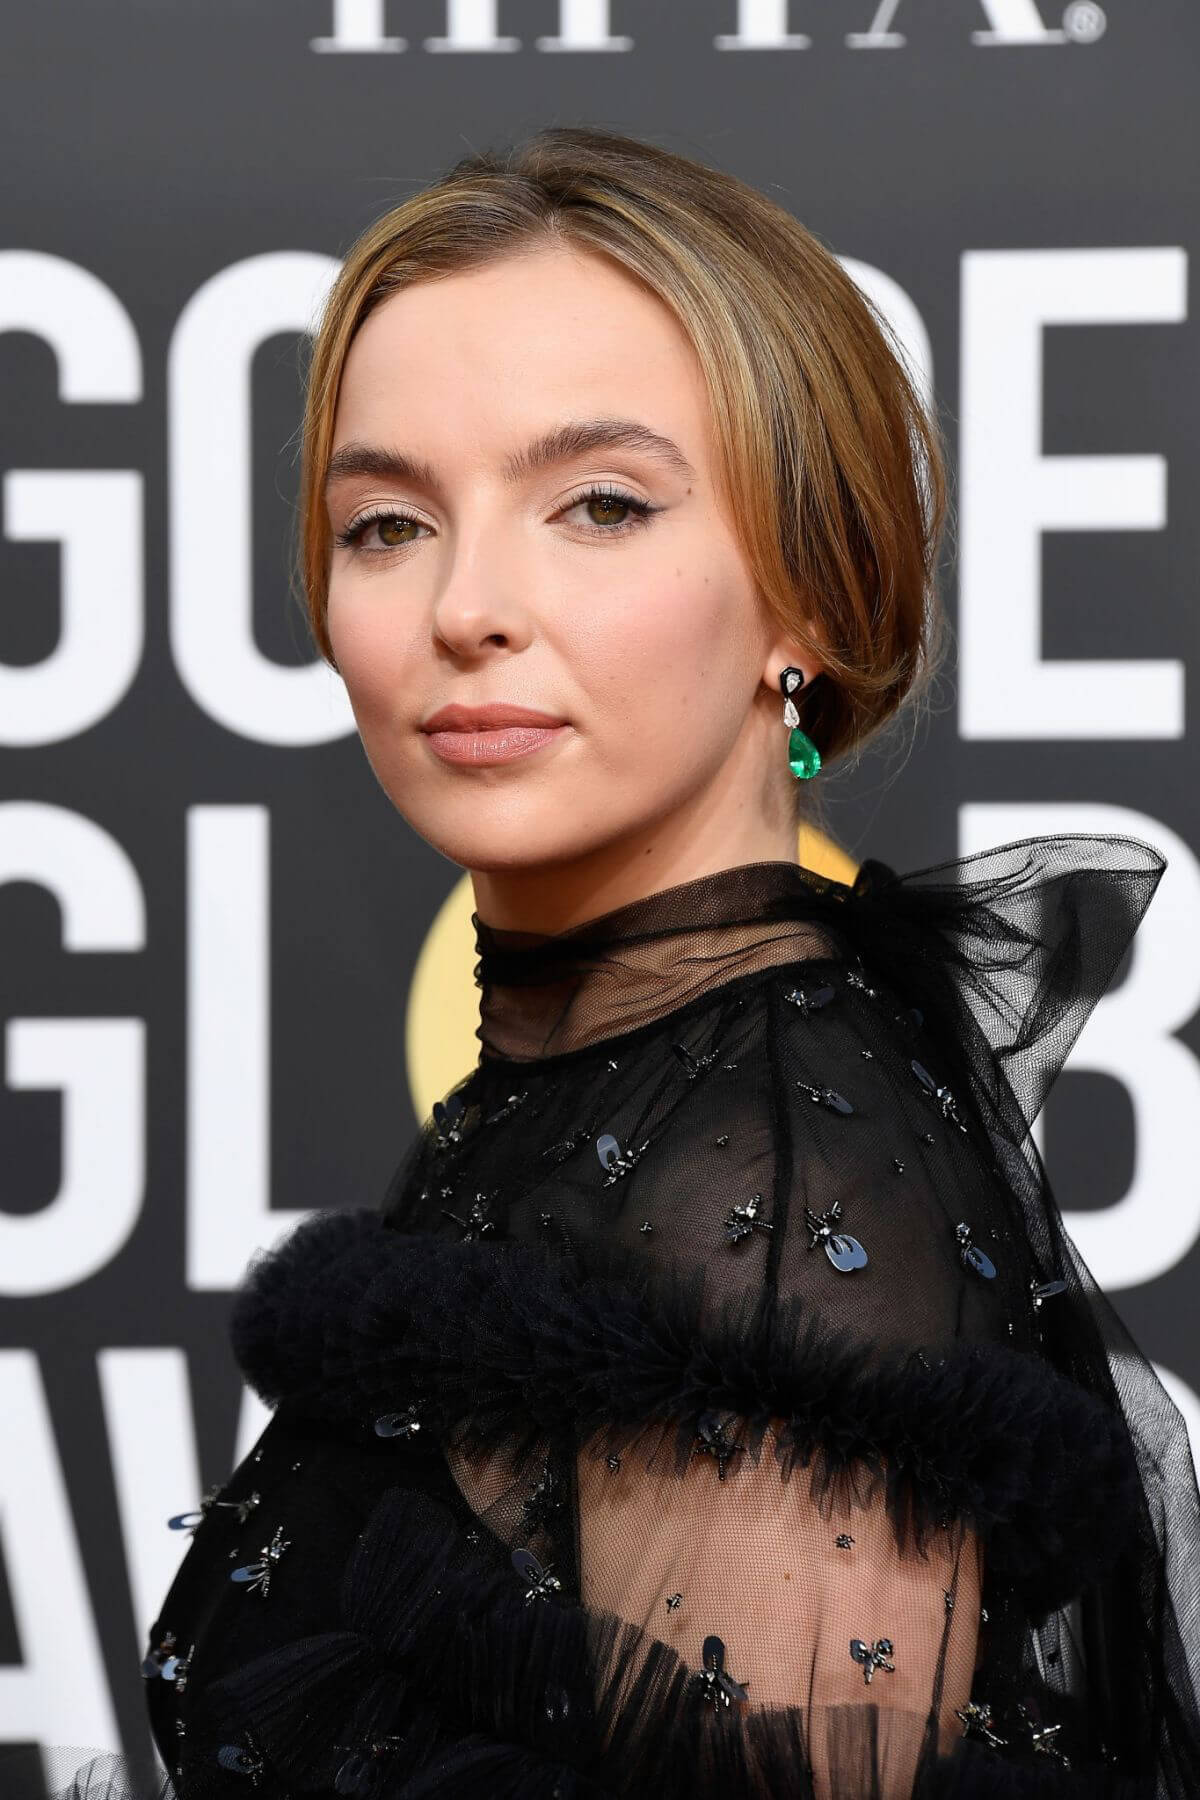 Jodie Comer at 2019 Golden Globe Awards in Beverly Hills 2019/01/06